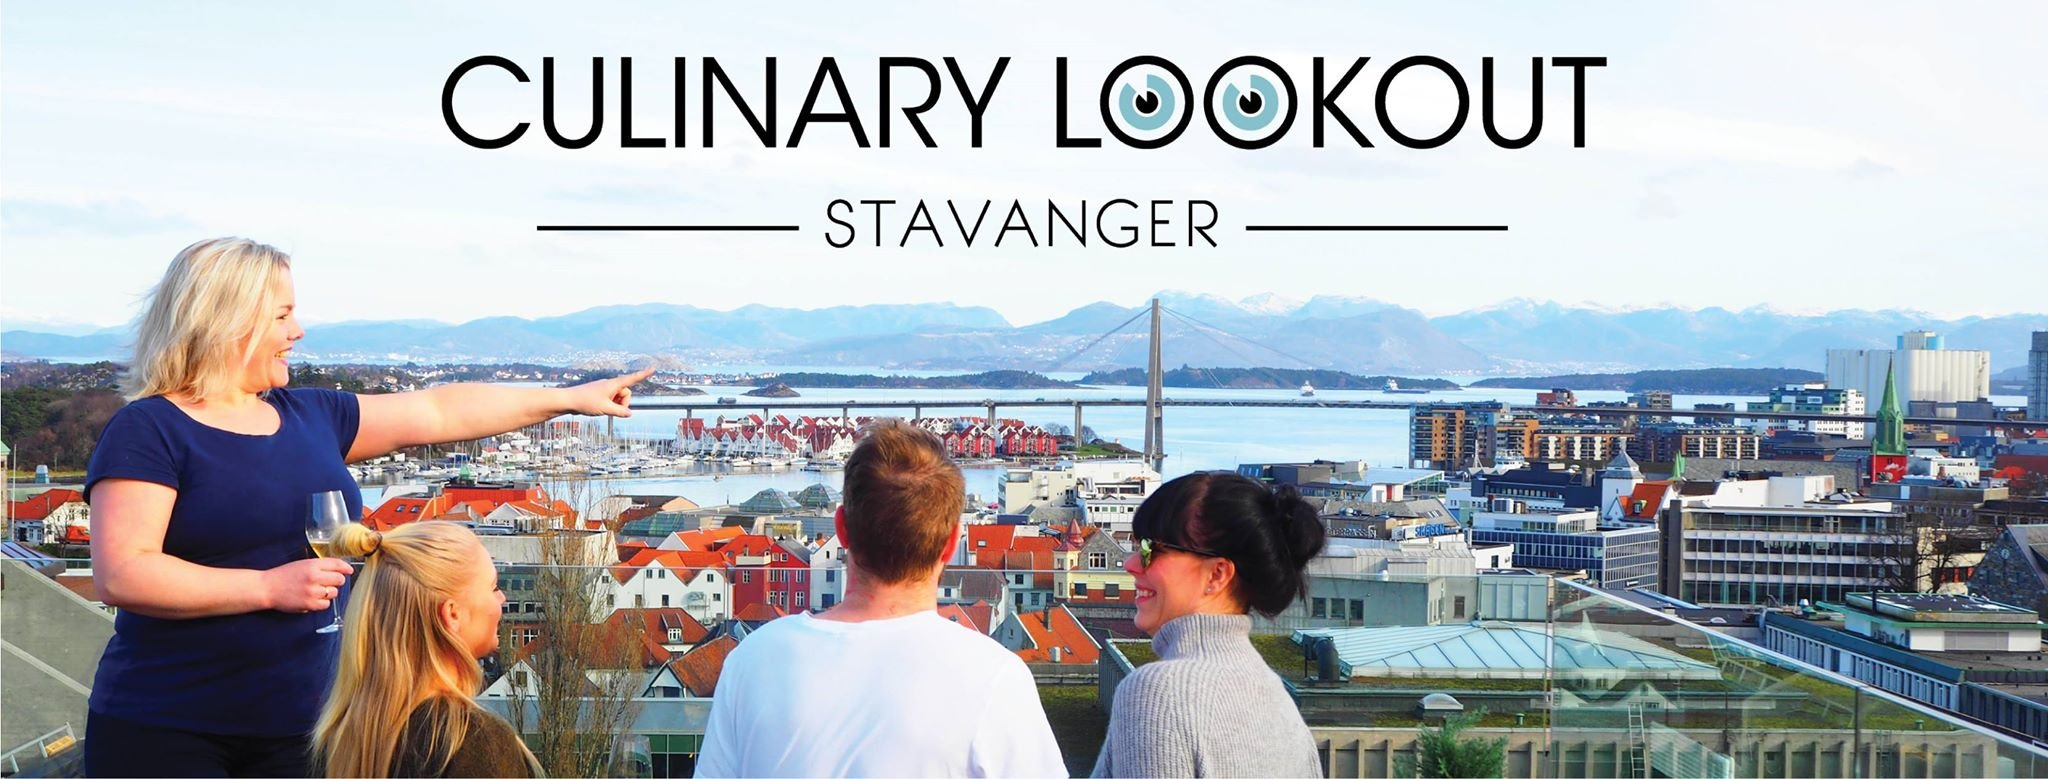 Culinary Lookout